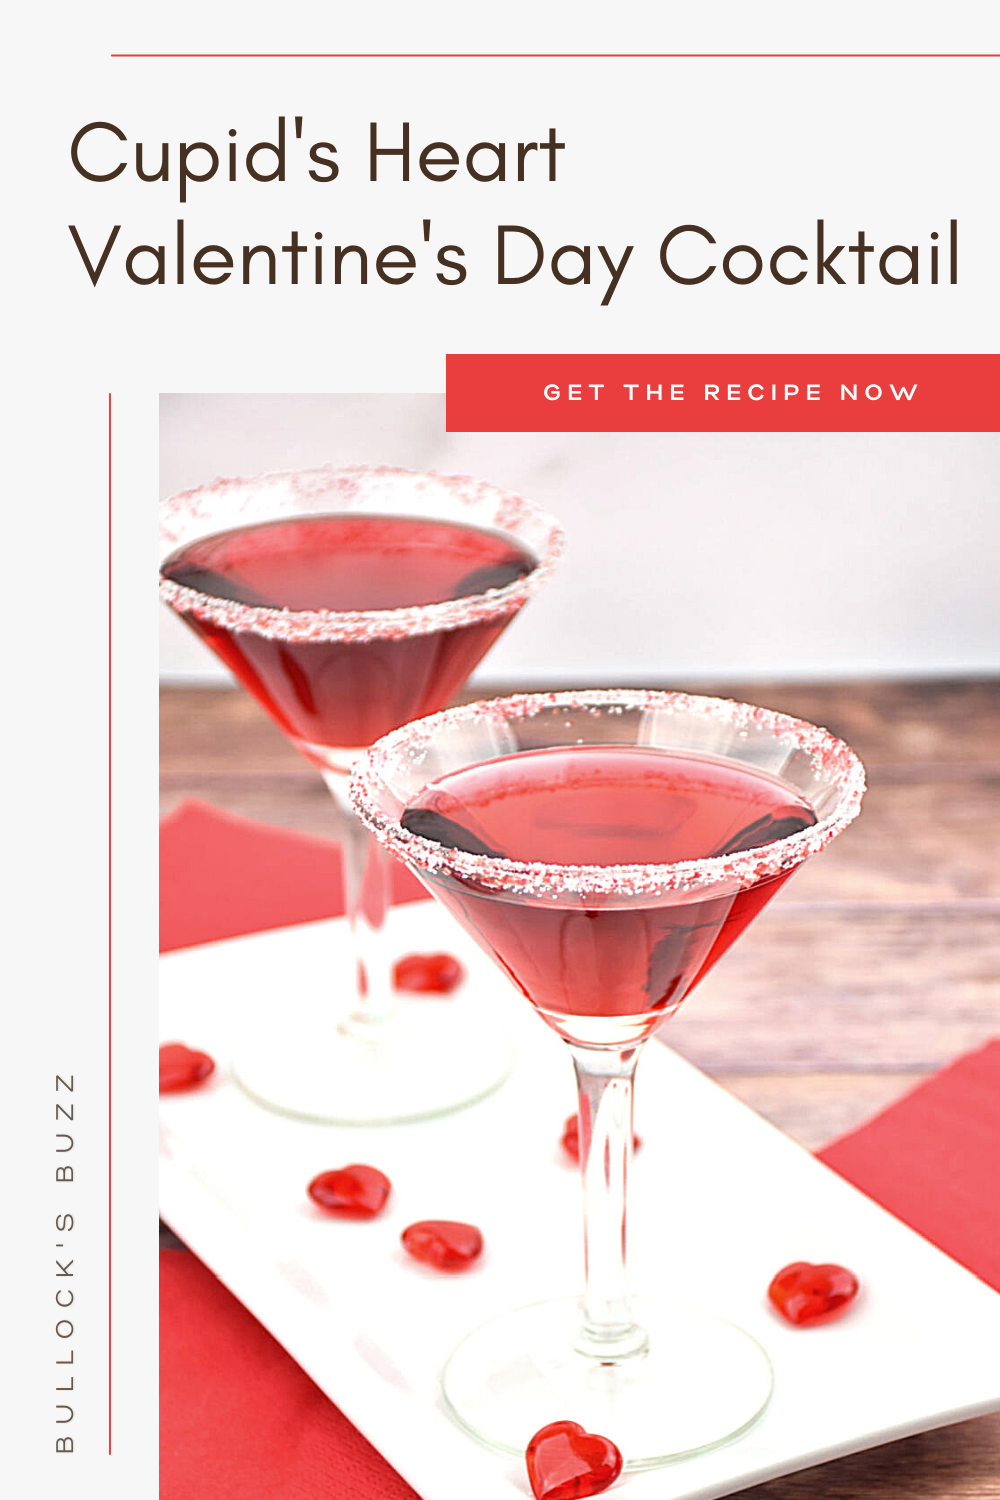 Whether you're looking for a Valentine's Day cocktail to share with your love, a Galentine's cocktail to share with your BFF, or even an anti-Valentines day cocktail to share with friends, this fruity Cupid's Heart Valentine's Day cocktail will have you falling in love!